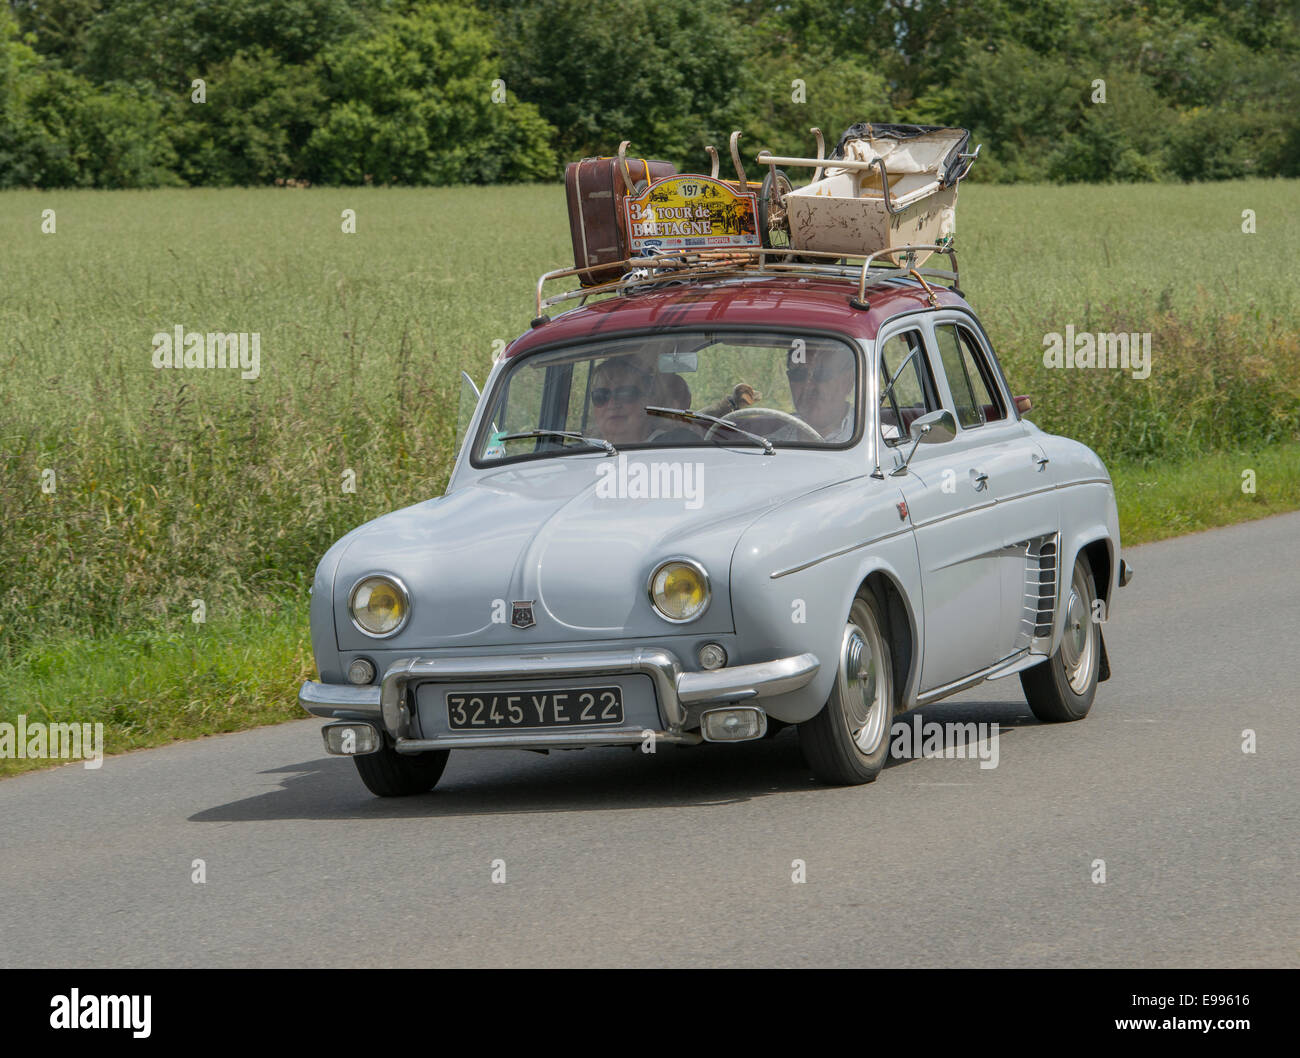 Renault Dauphine Of 1959 In The Tour De Bretagne 2014 France Stock Photo Alamy